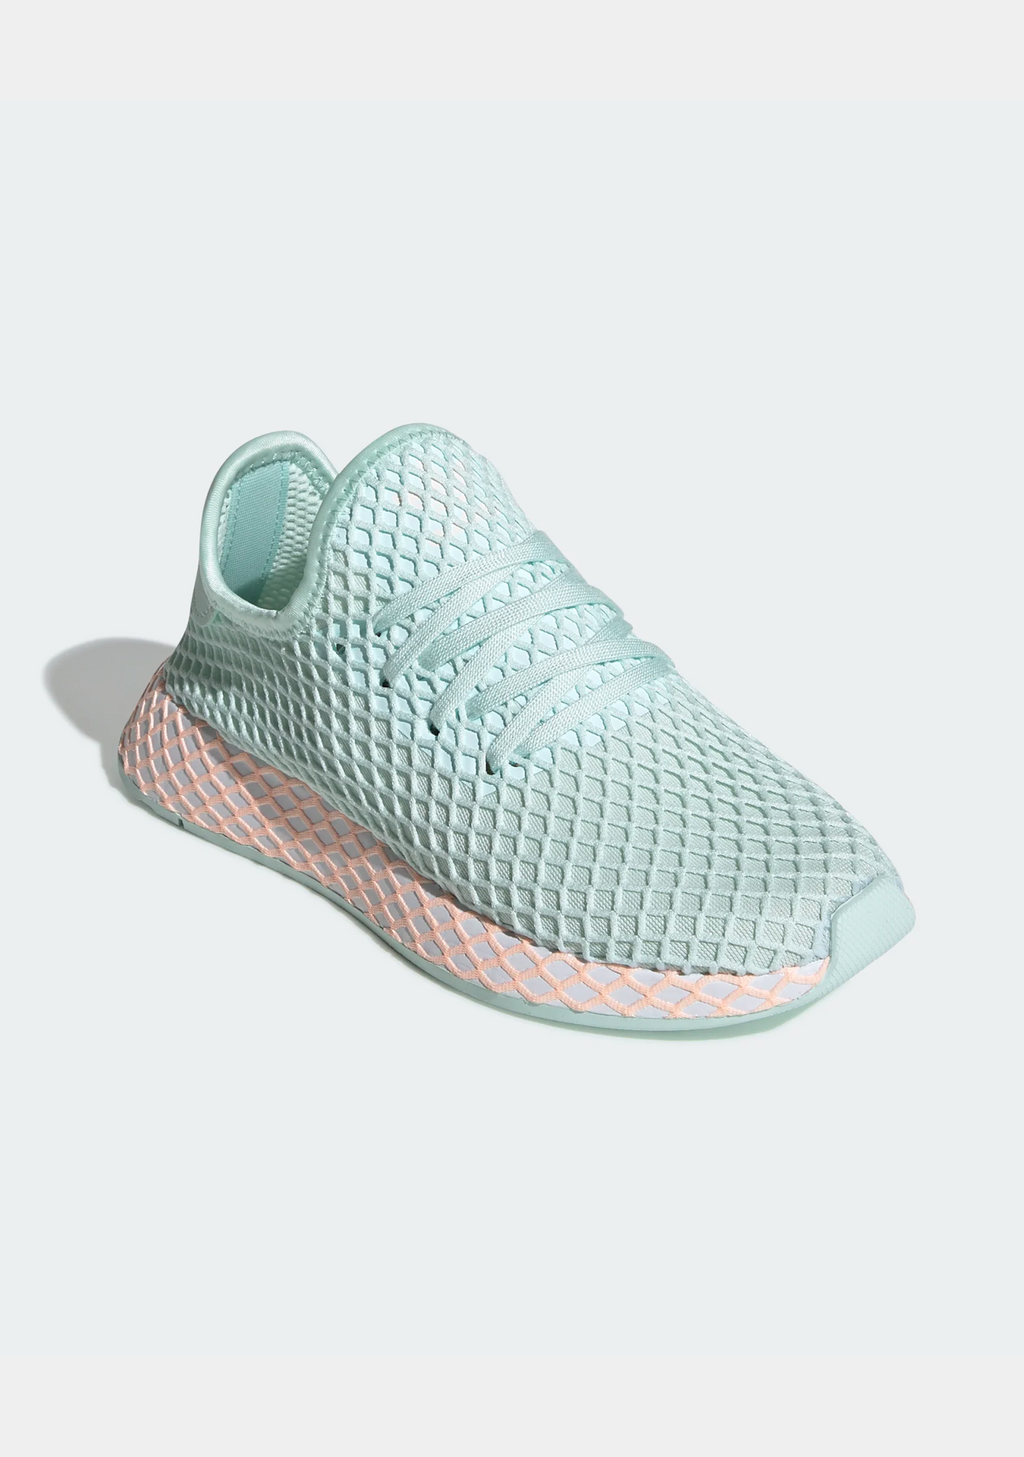 ADIDAS ORIGINALS JUNIOR DEERUPT RUNNER SHOES <br> CG6841